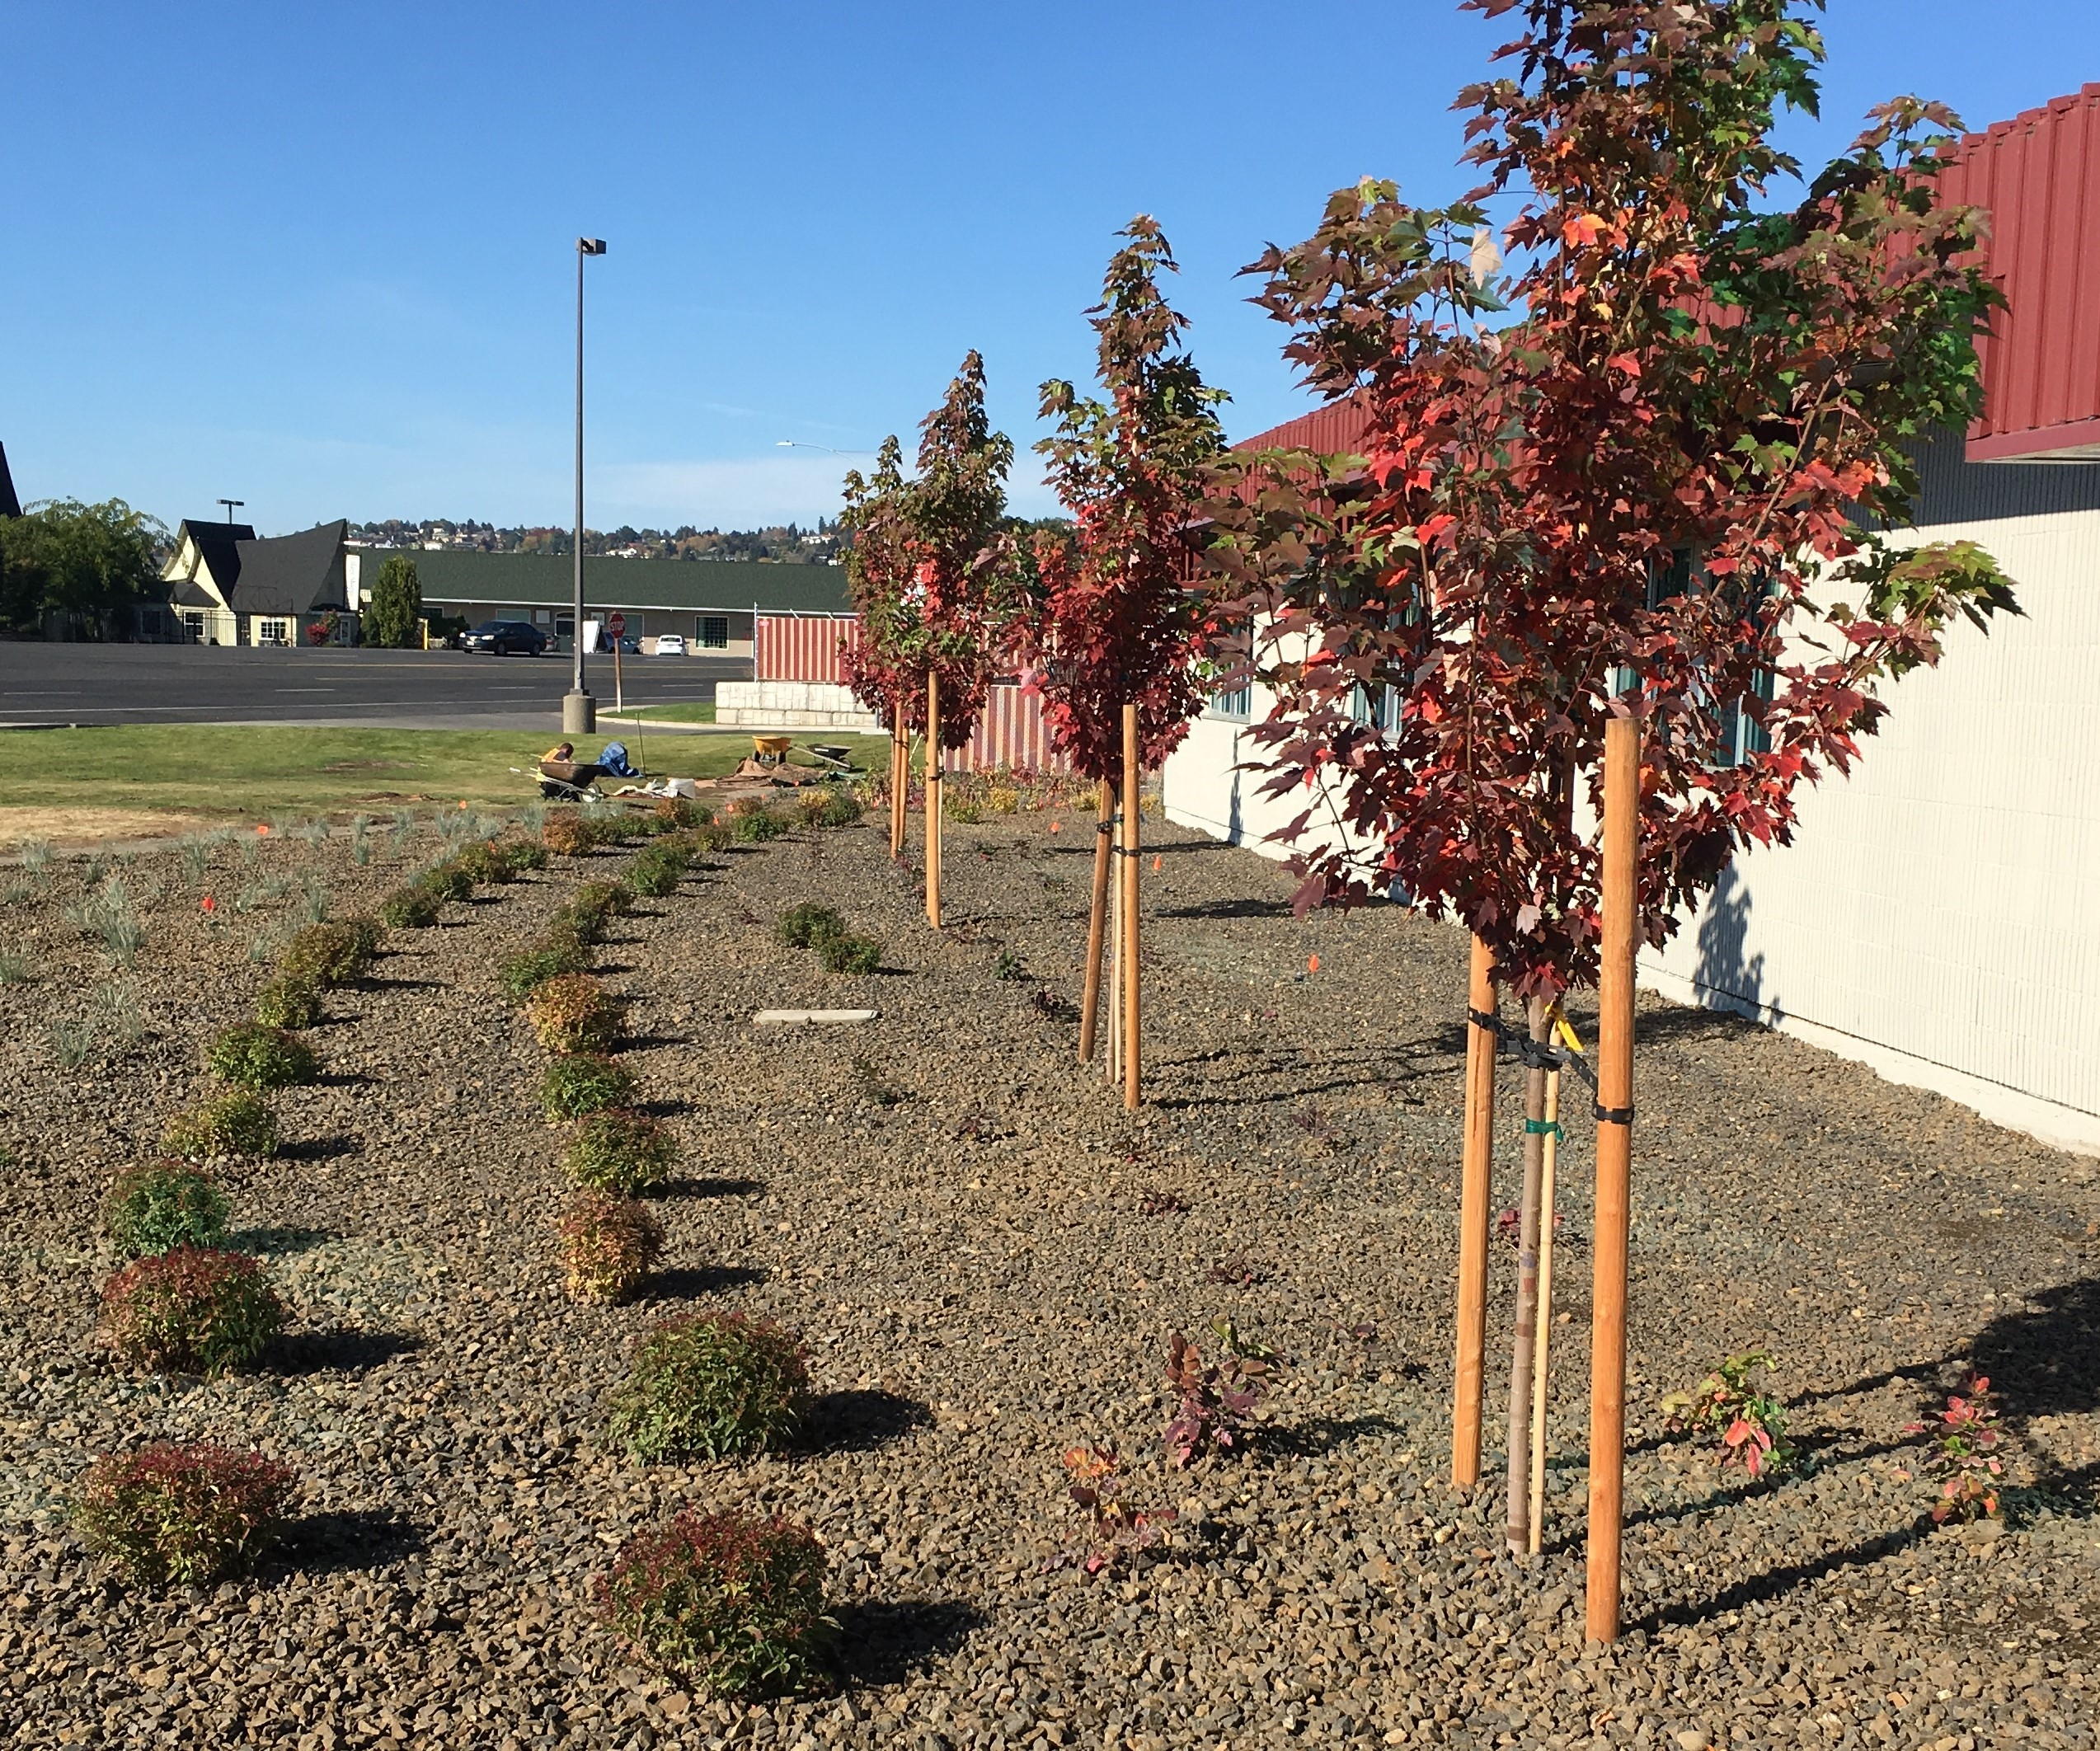 Public Works Landscaping Project to Conserve Water - News - City of ...